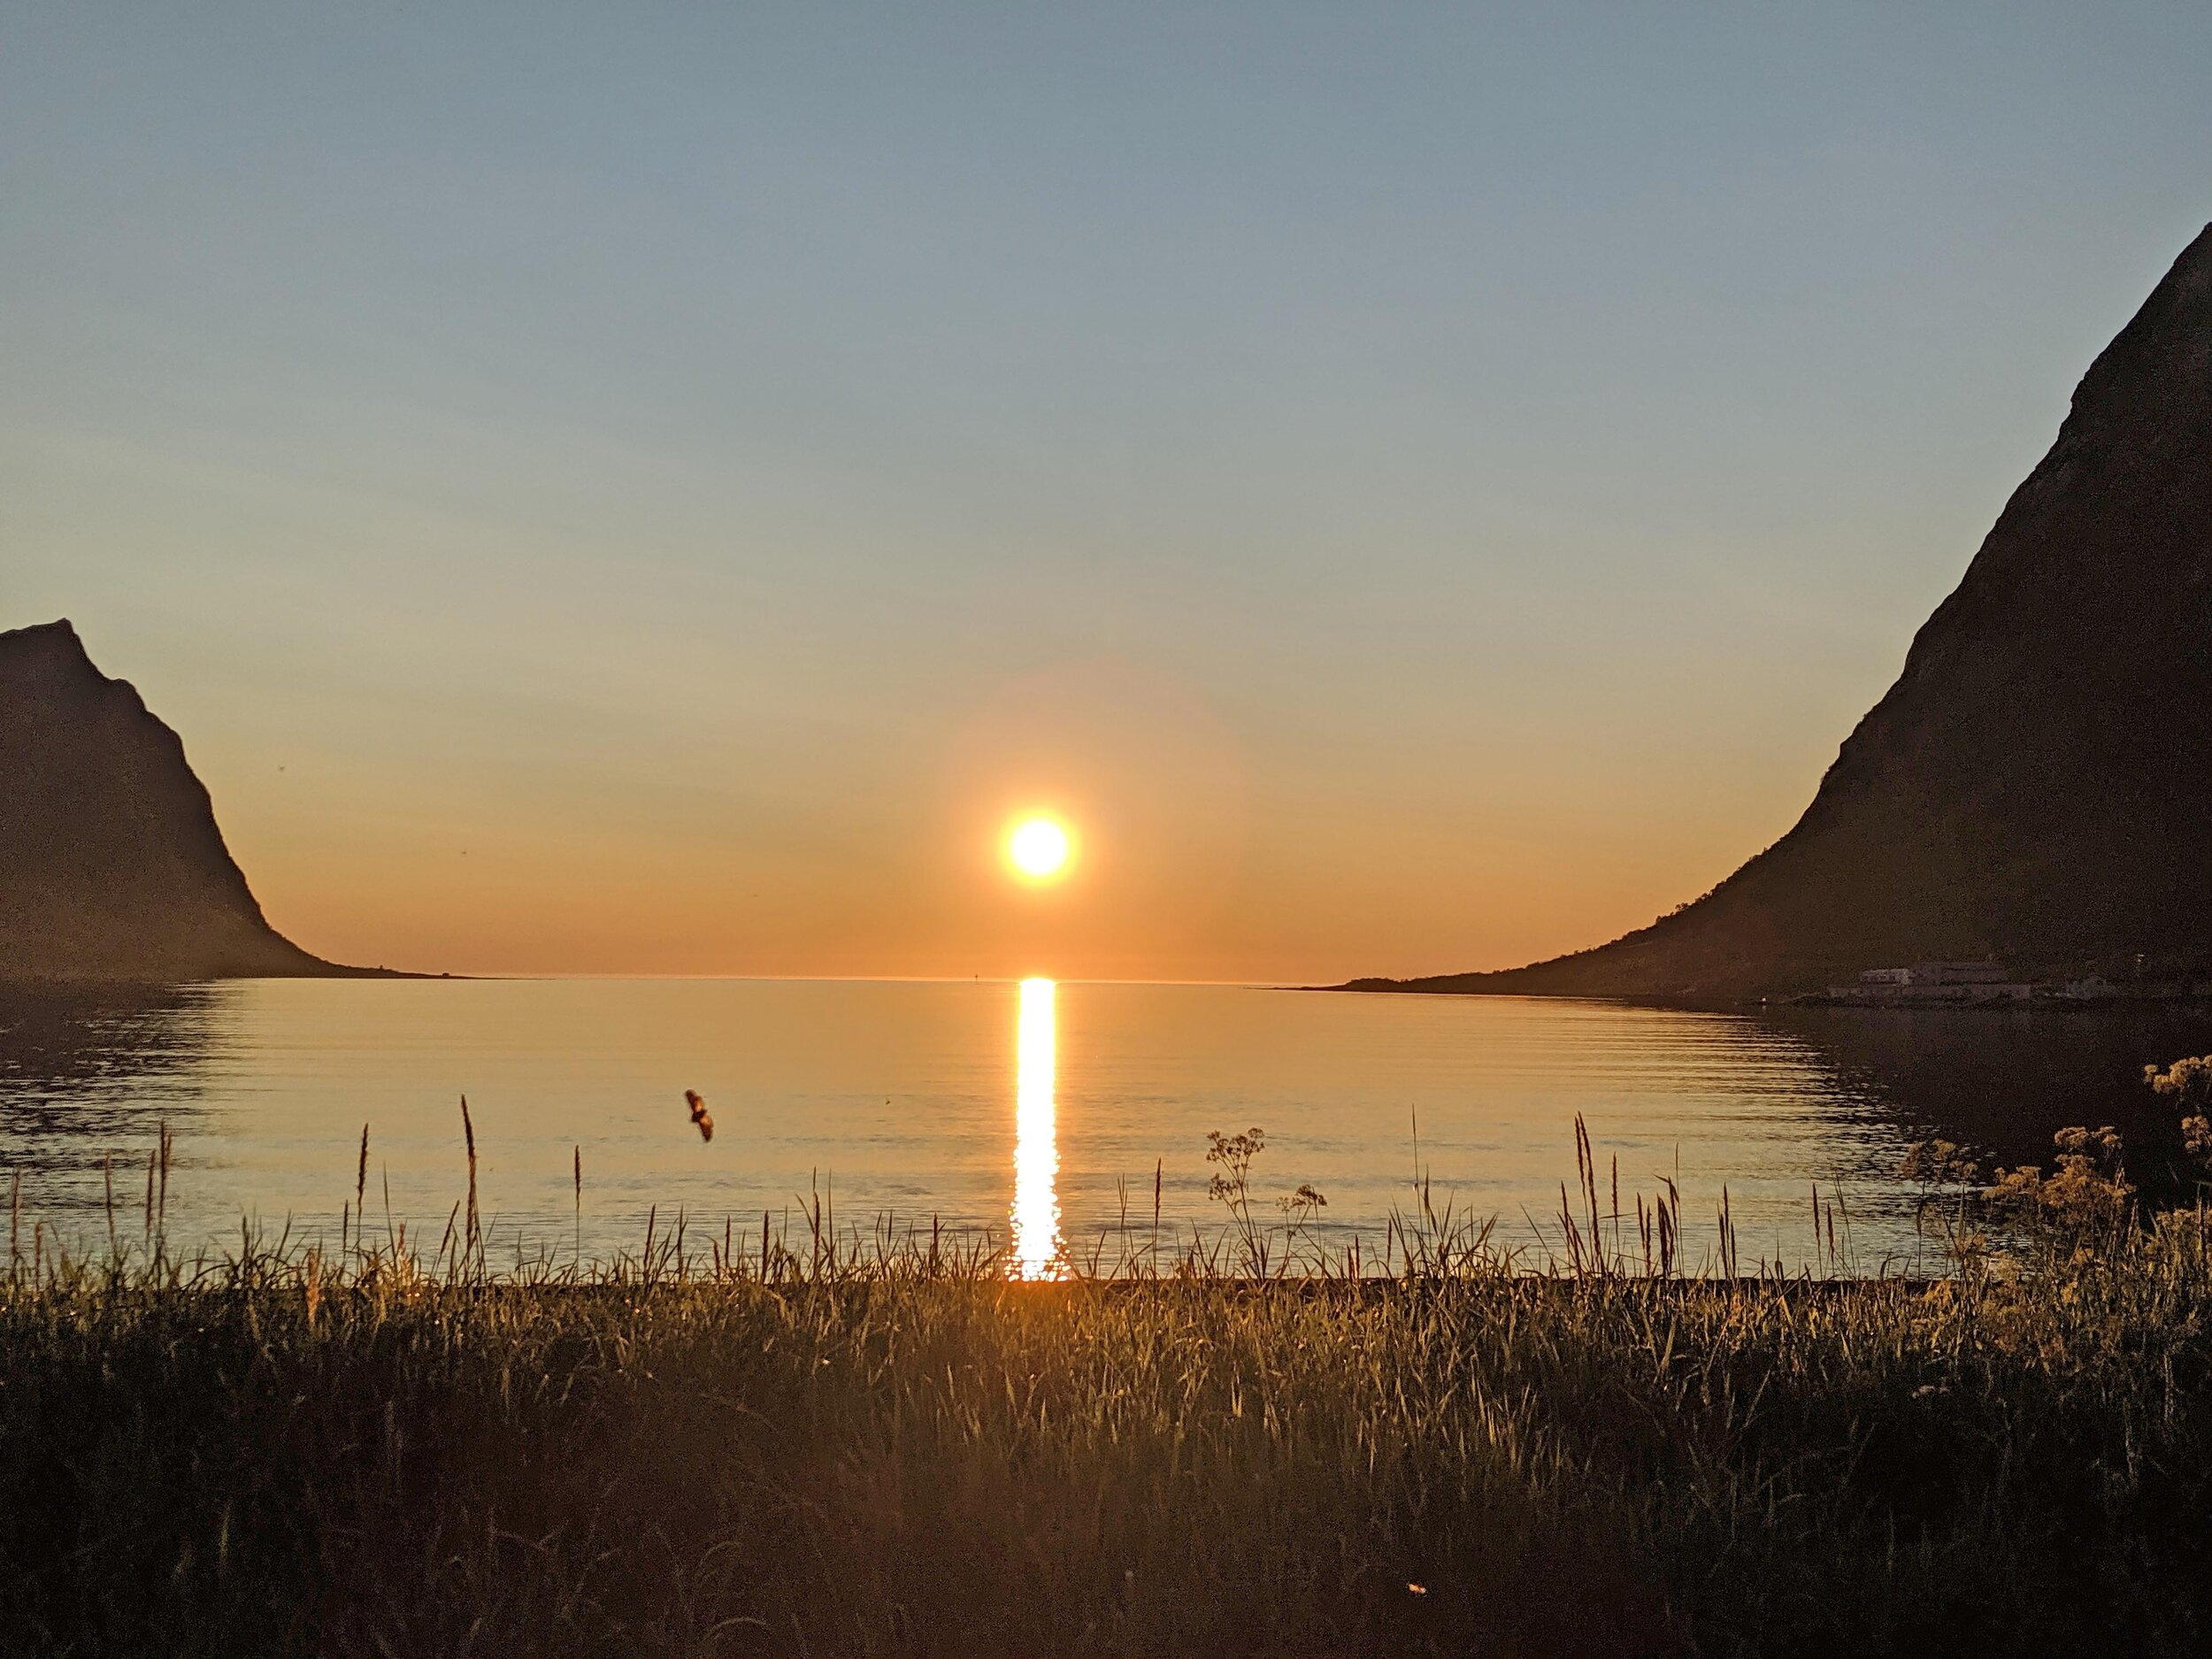 A perfect view of the midnight sun